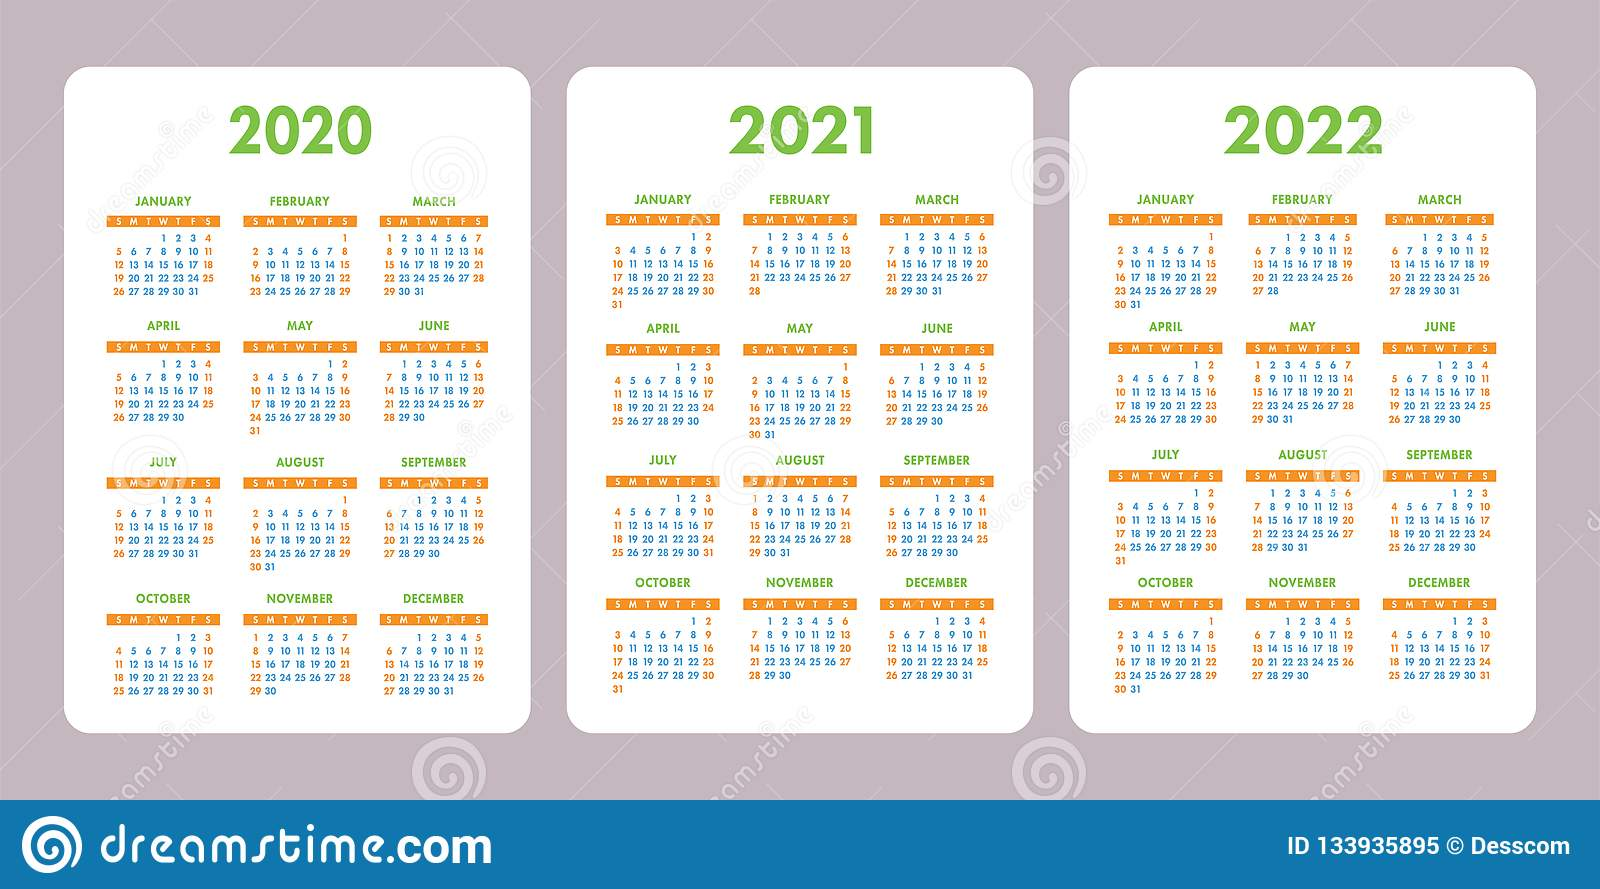 Calendrier 2020 2021.Pocket Calendar 2020 2021 2022 Years Vertical Vector